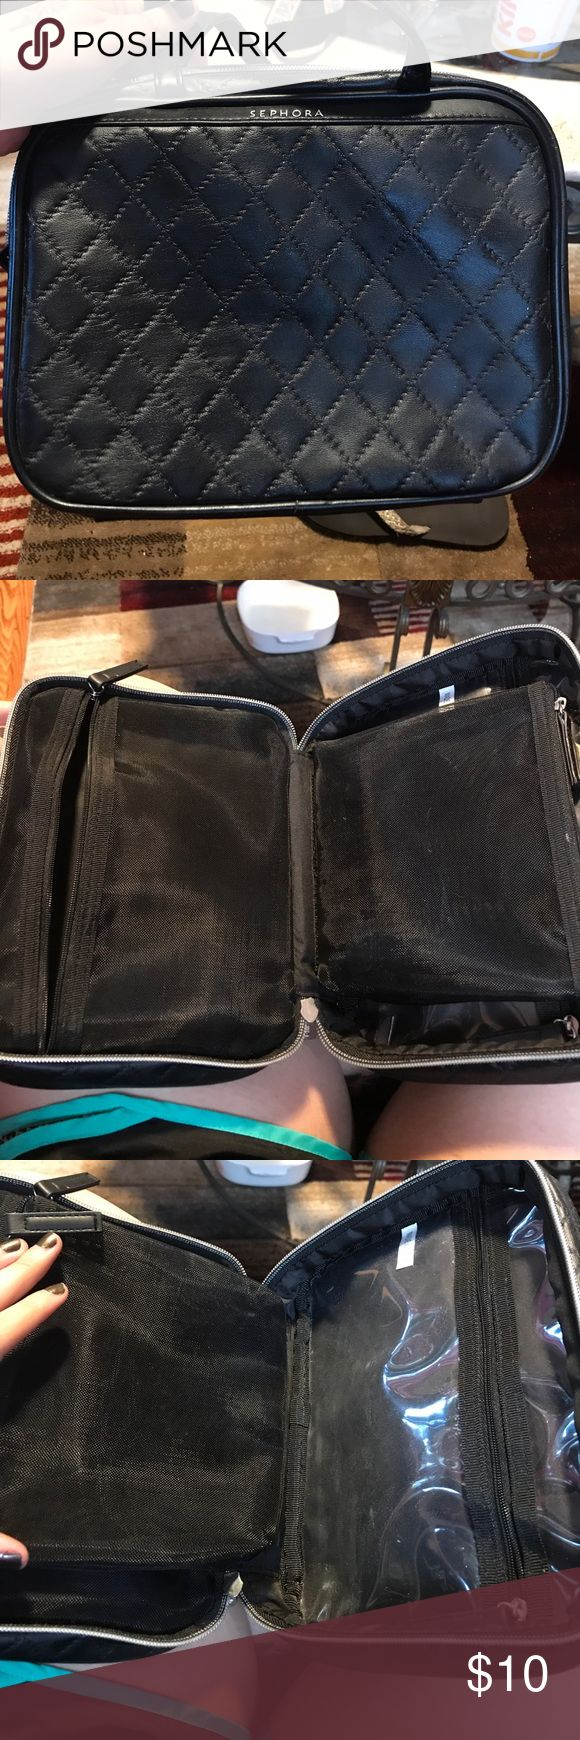 Black sephora makeup travel case Sephora black makeup travel case. Zip closure with 2 mesh compartments and one plastic compartment all with zippers. Only been used once! Sephora Bags Cosmetic Bags & Cases